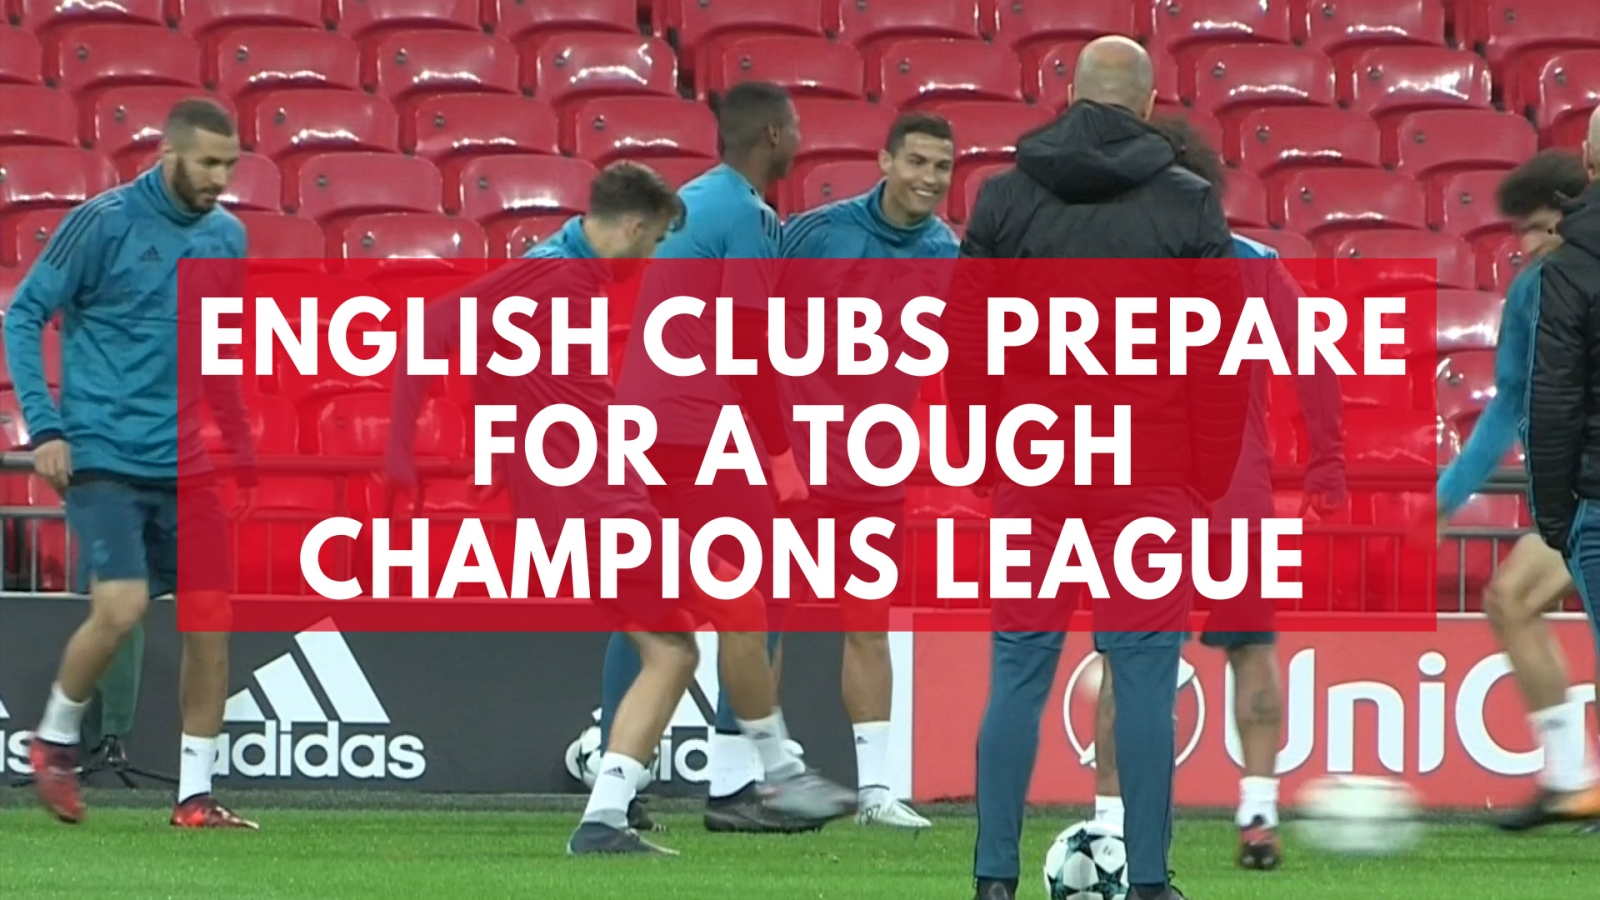 English clubs prepare for tough Champions League ties